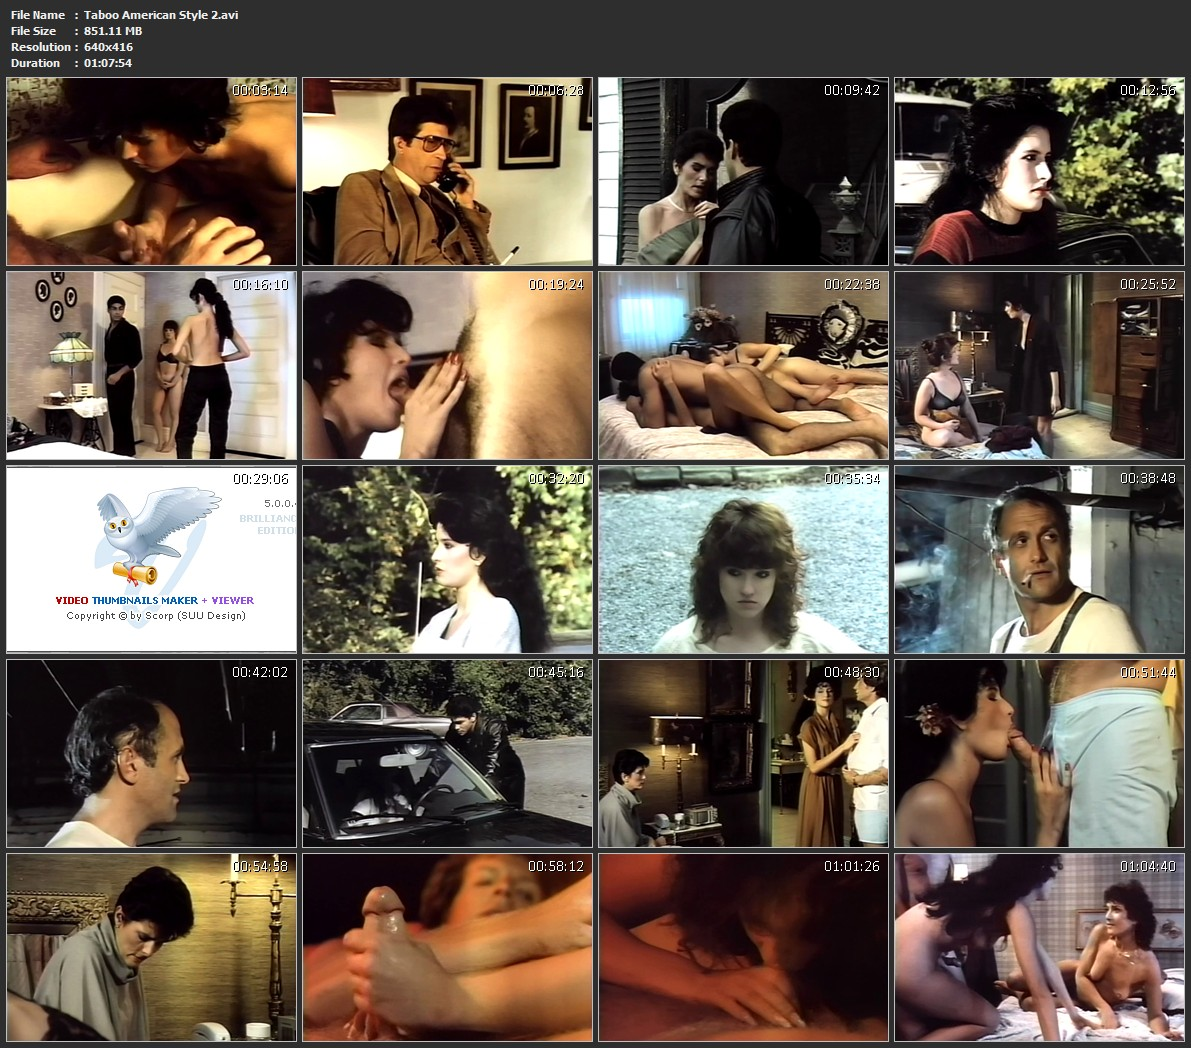 American Taboo Movie taboo american style 2 1985 | download movie